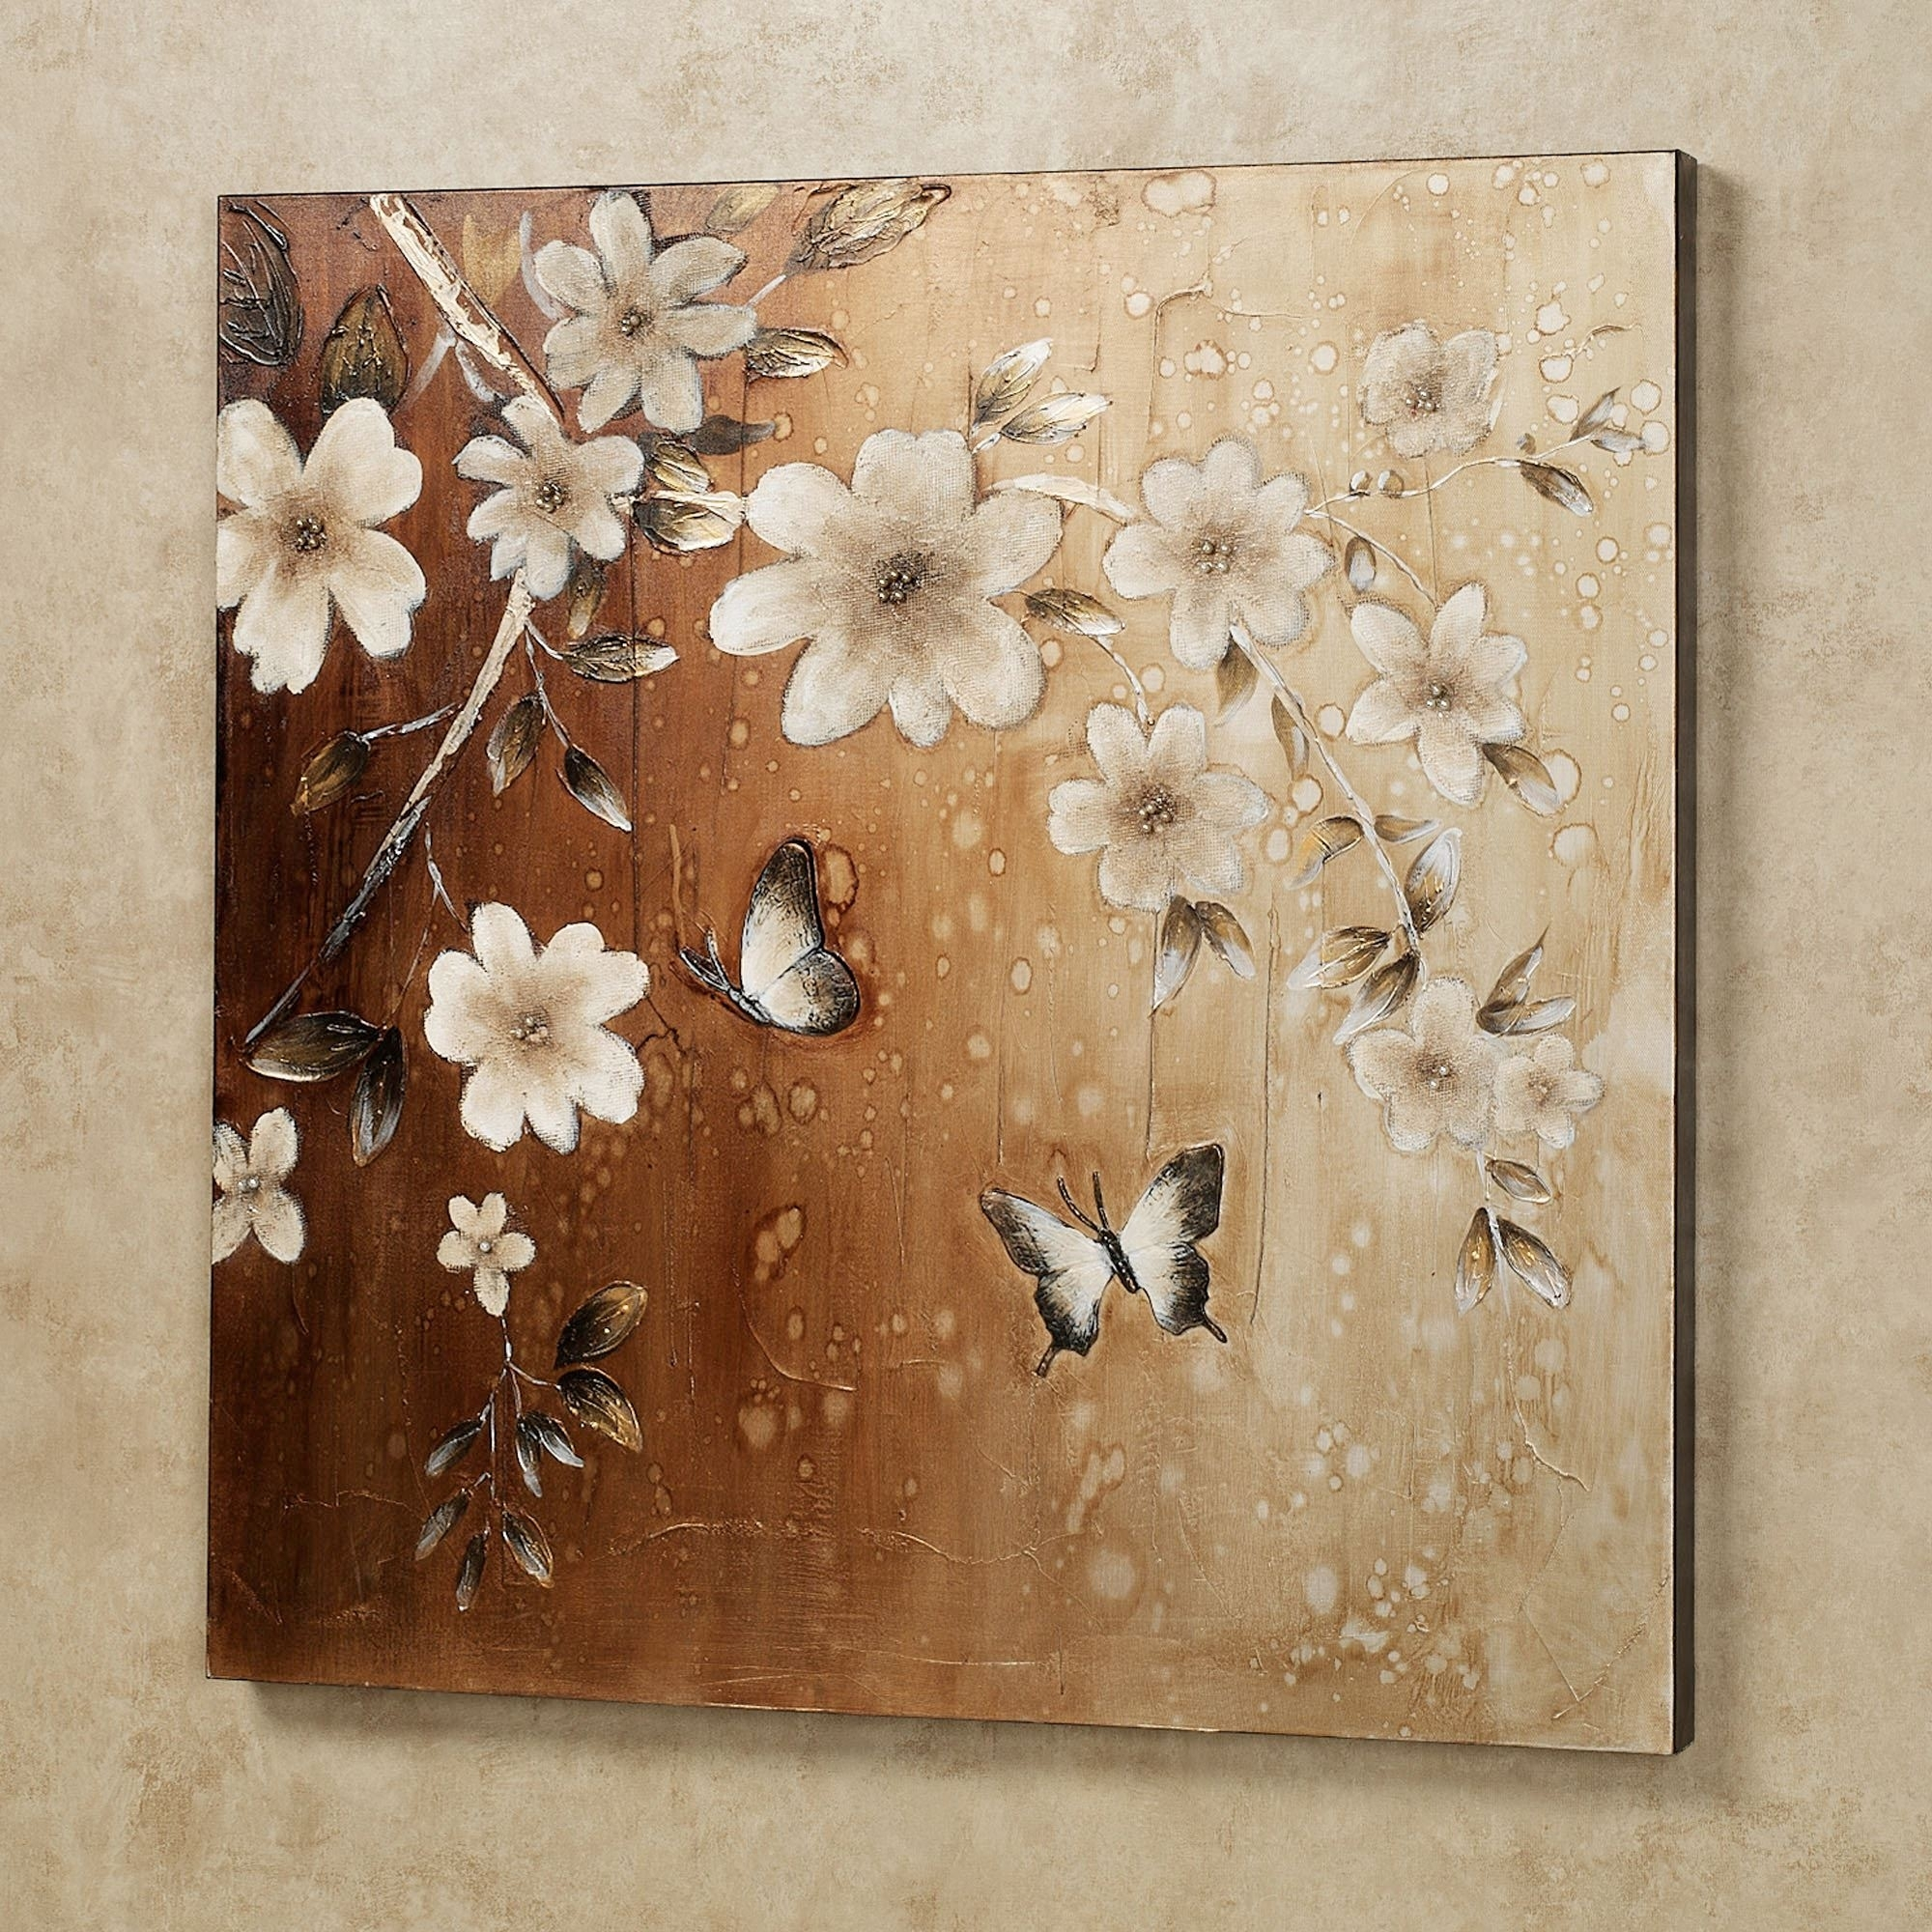 Midday Sun Butterfly Floral Canvas Wall Art Regarding Latest Floral Canvas Wall Art (View 4 of 20)